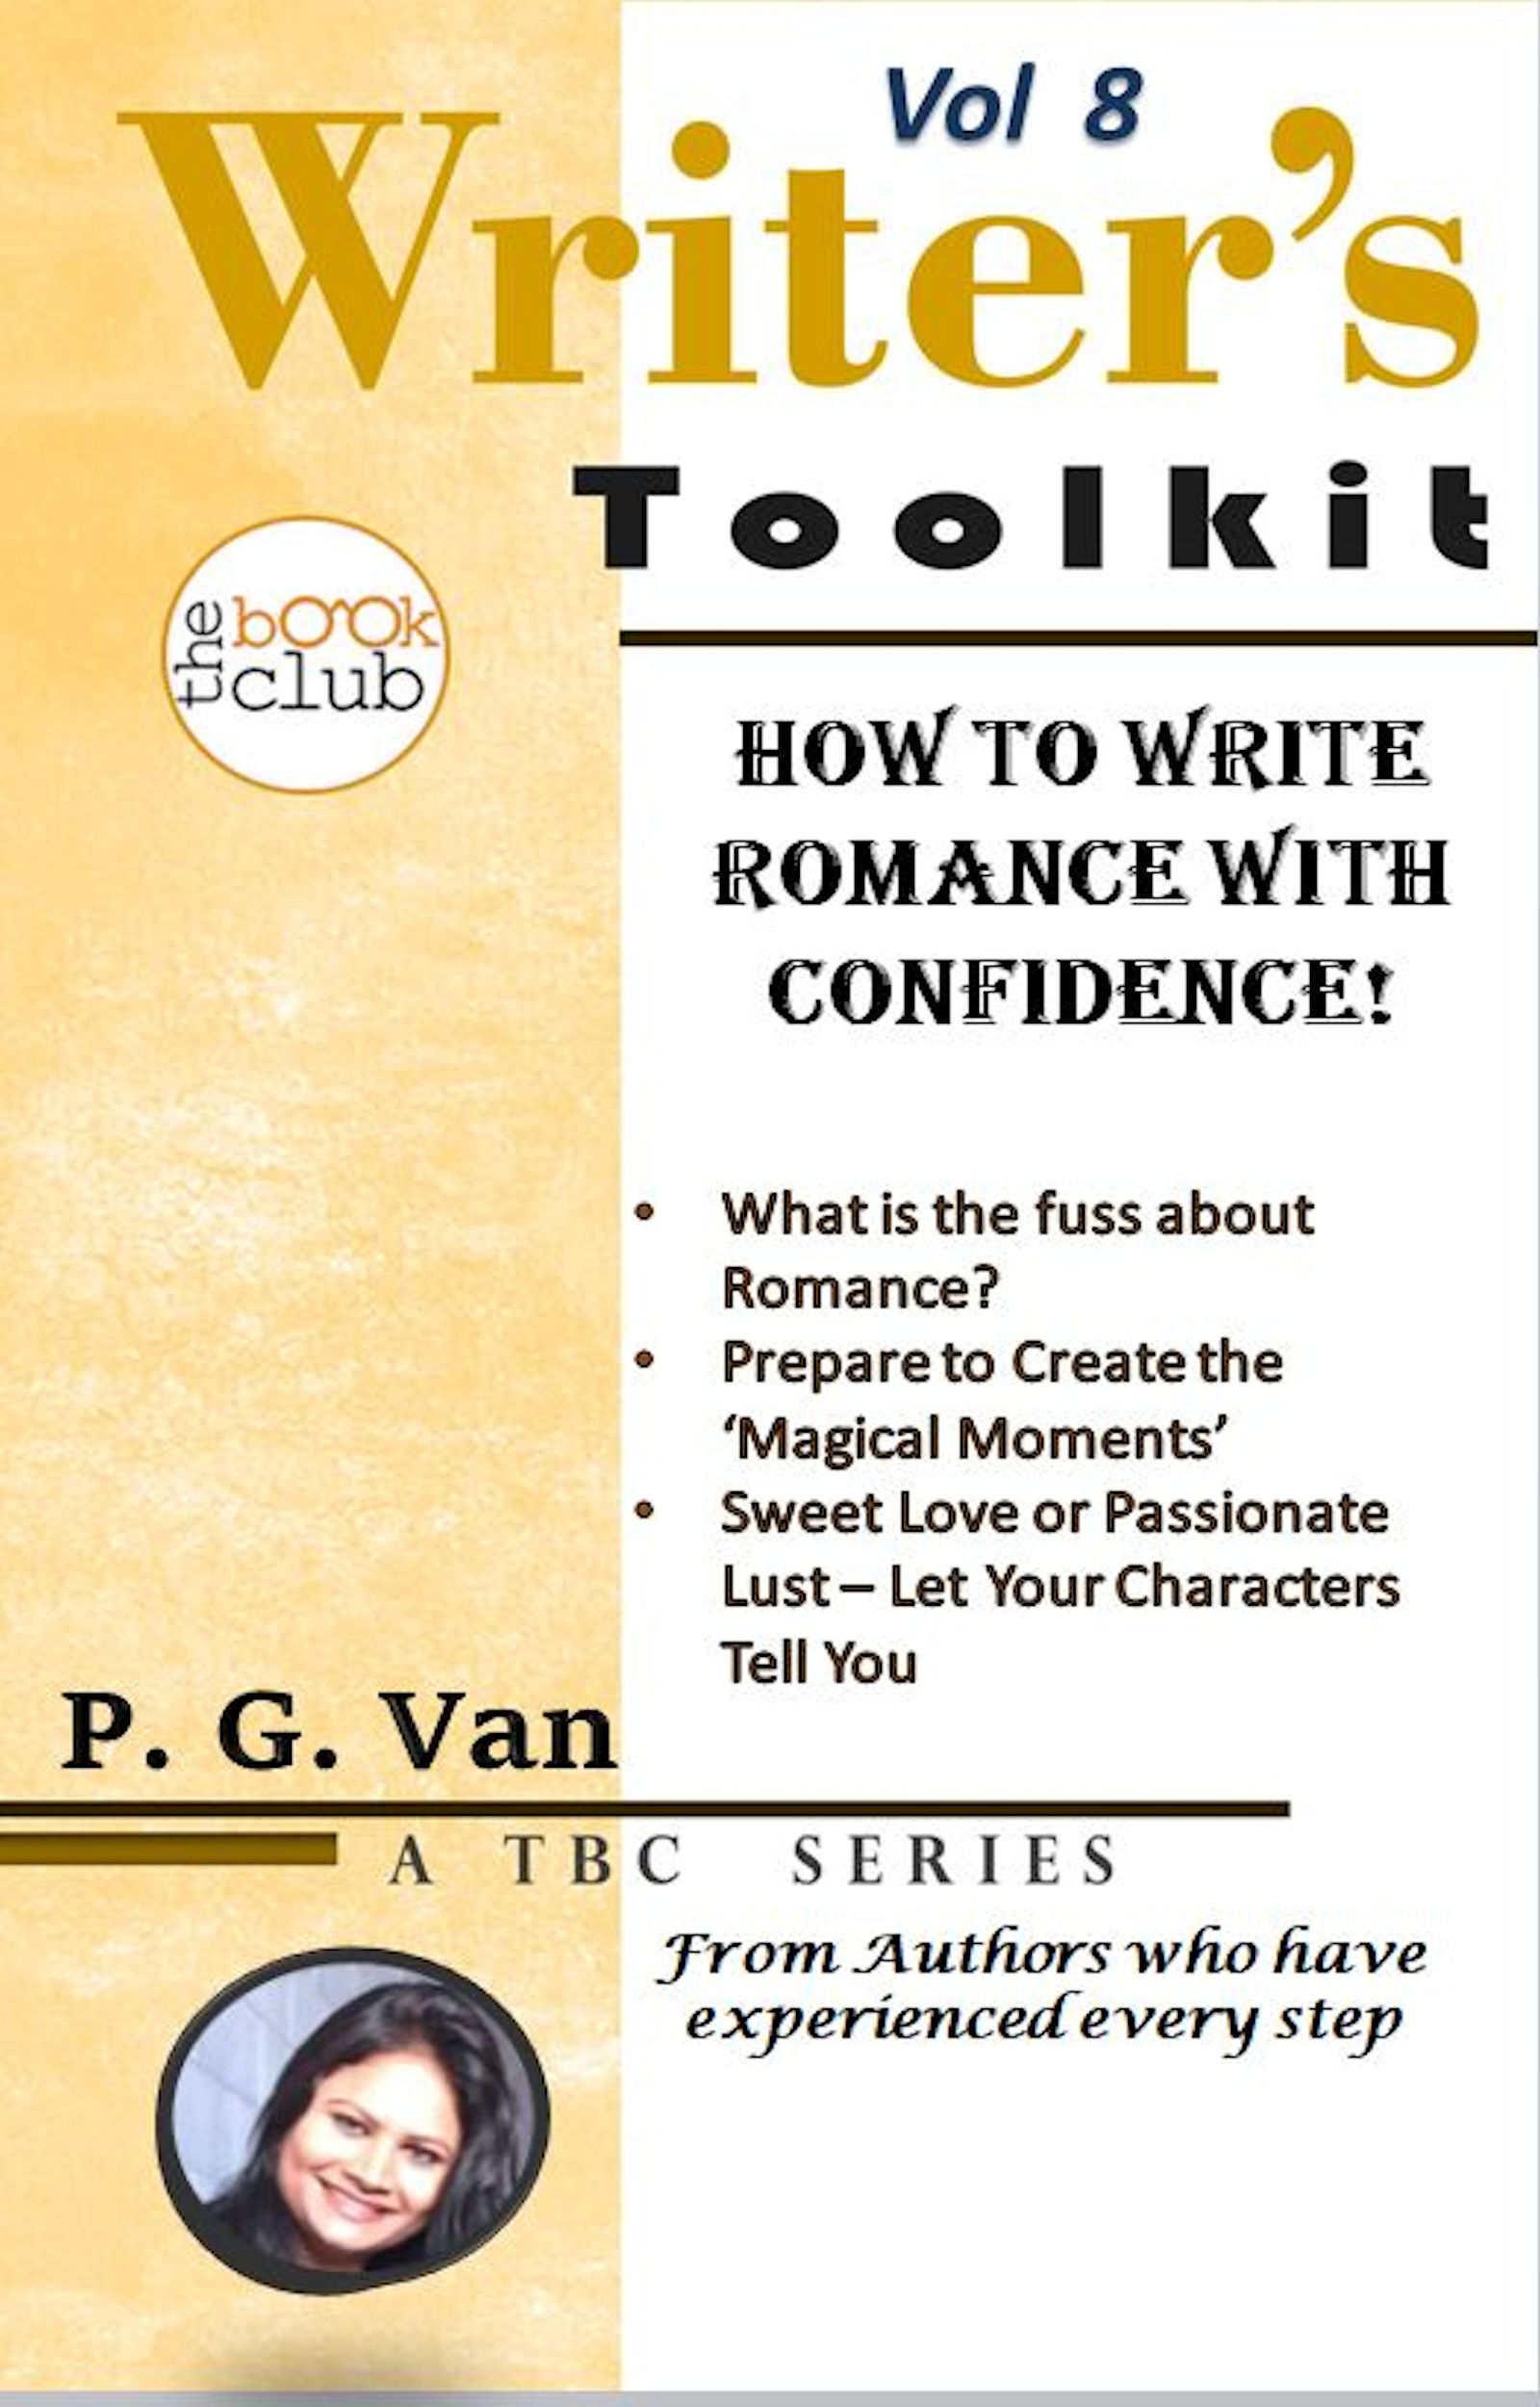 How to Write Romance with Confidence